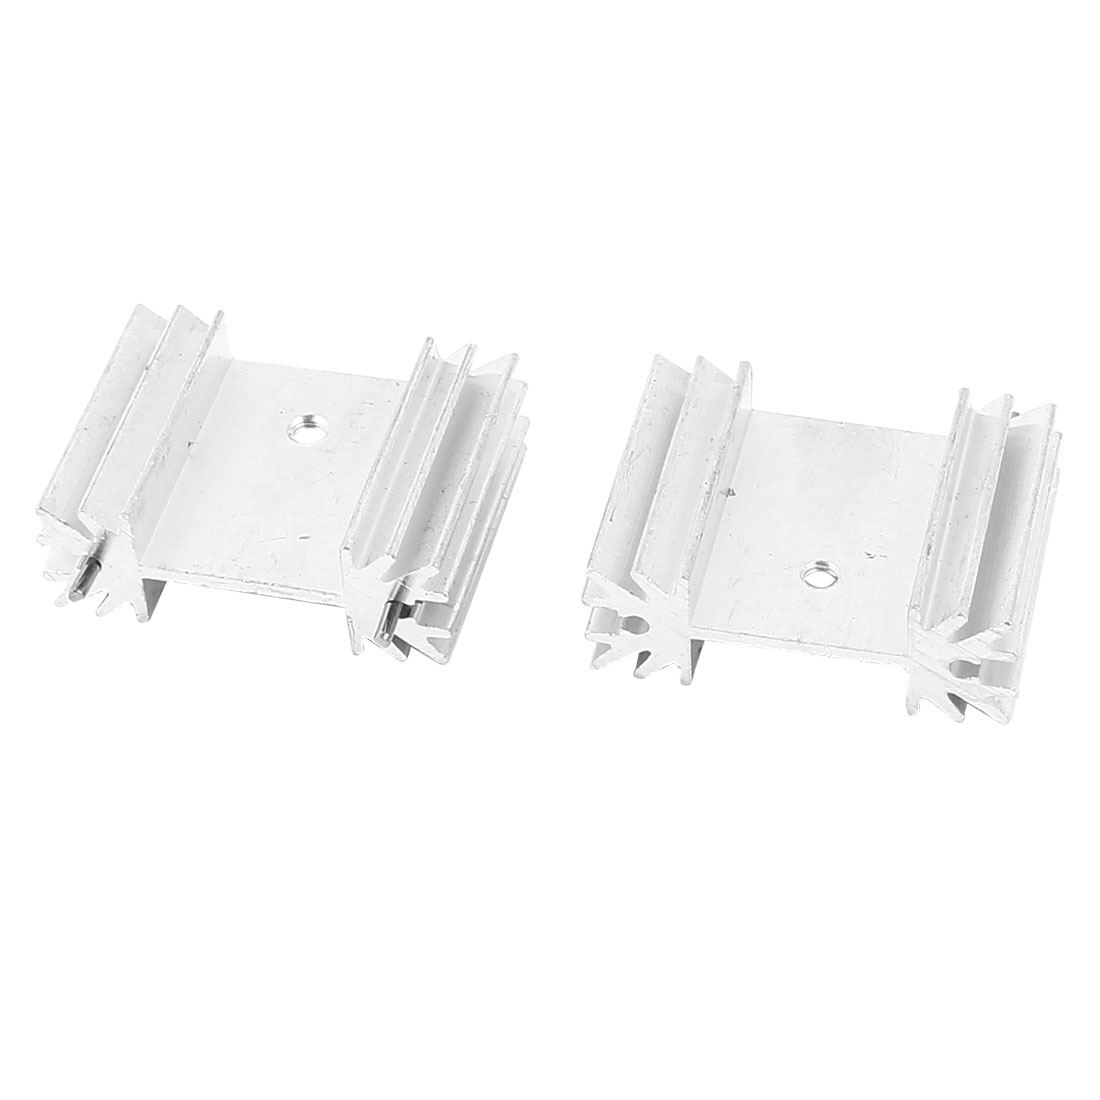 2 Pcs Silver Tone Aluminum Heat Sink 34x25x12mm for TO-220 Transistors